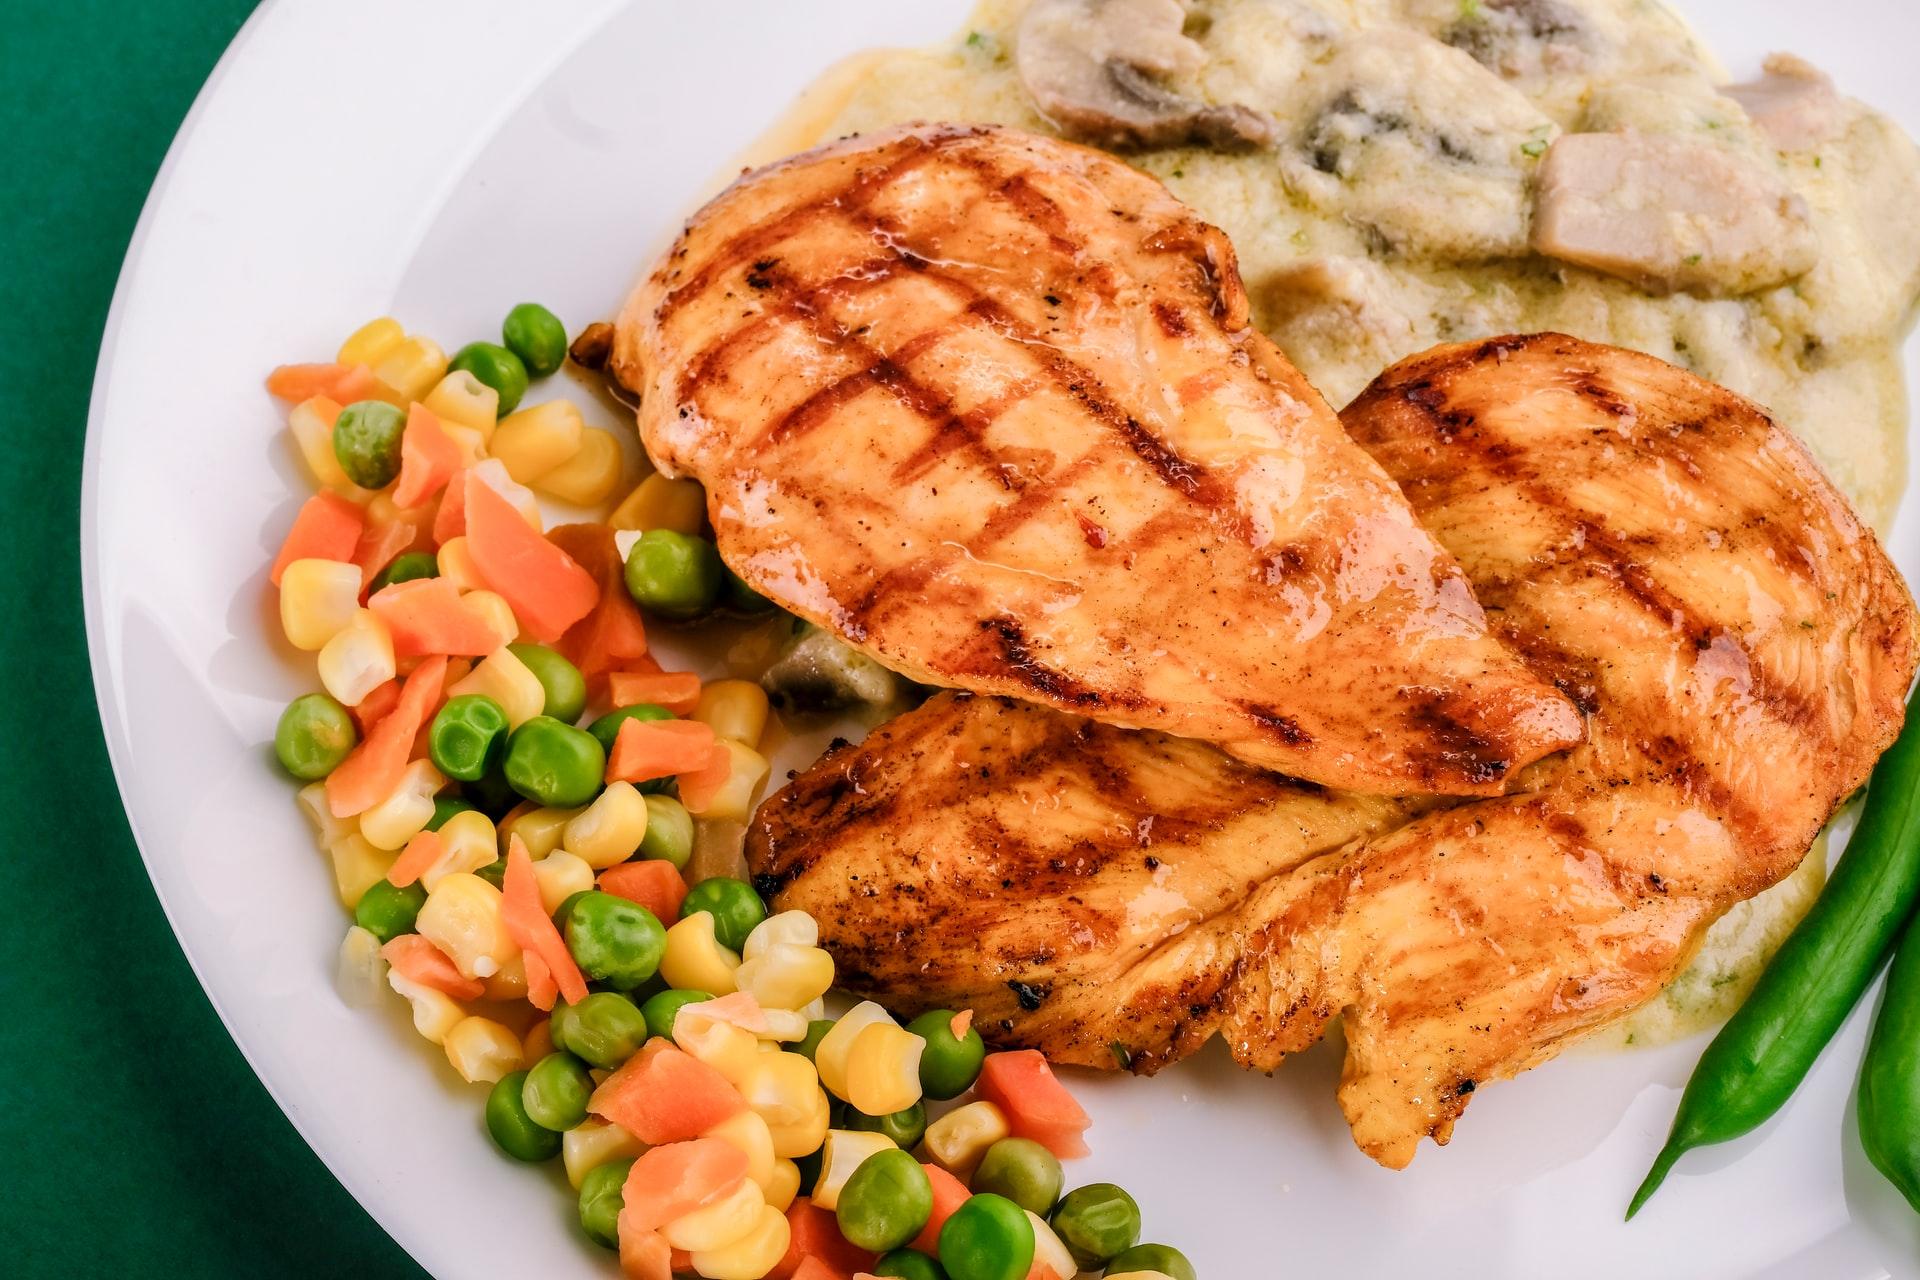 Overhead on plate of grilled chicked with steamed vegetables